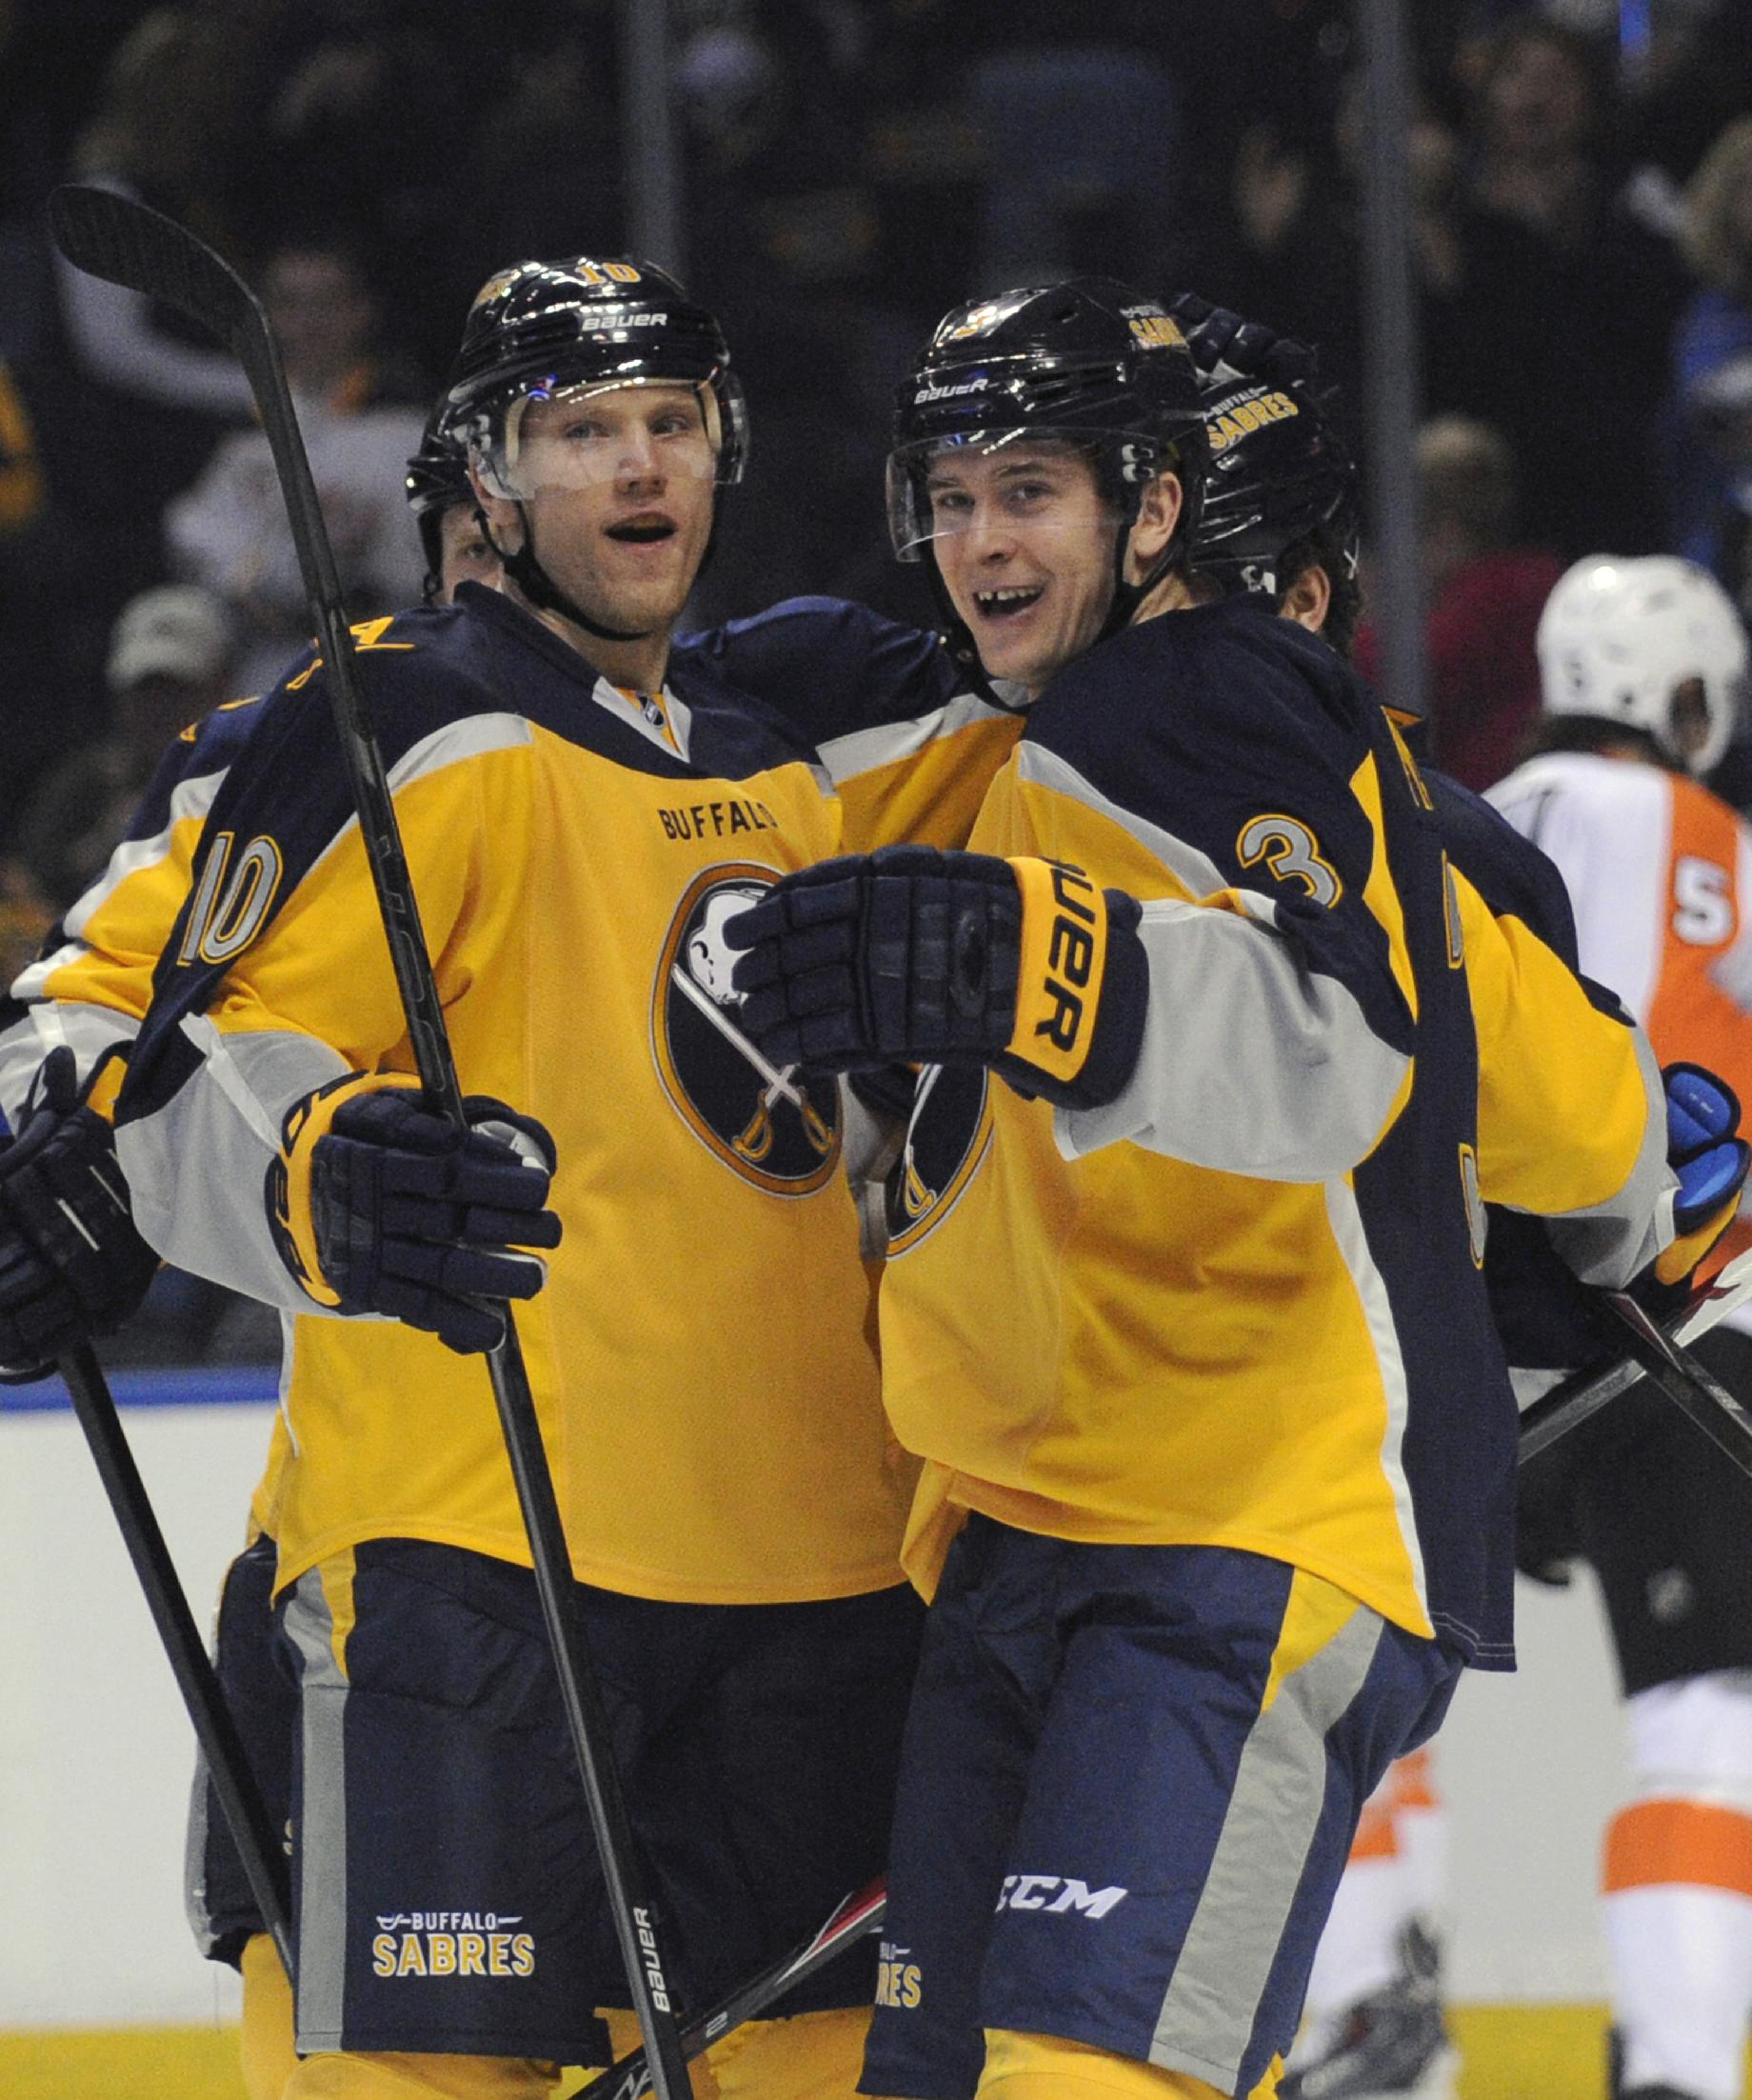 Lecavalier lifts Flyers to 4-3 win over Sabres